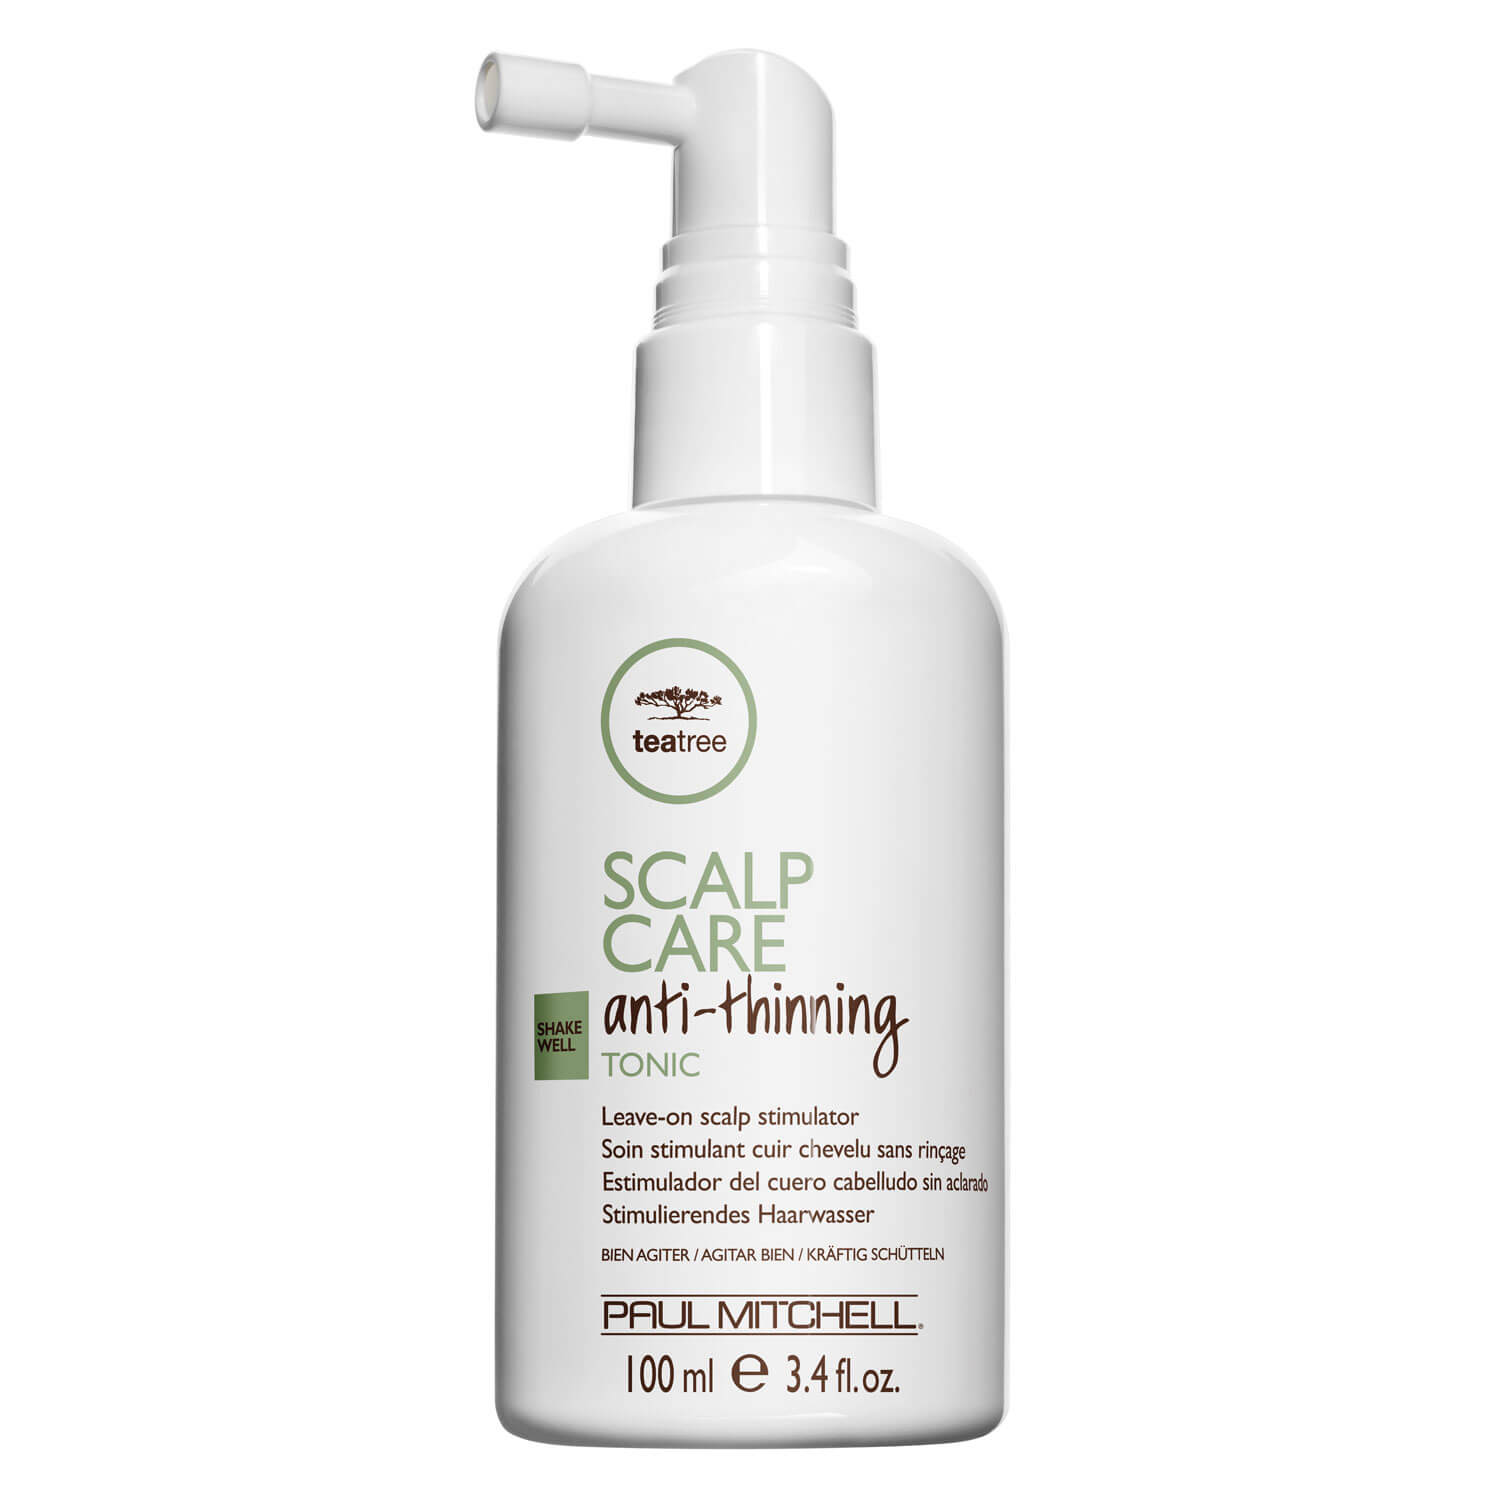 Tea Tree Scalp Care - Anti-Thinning Tonic